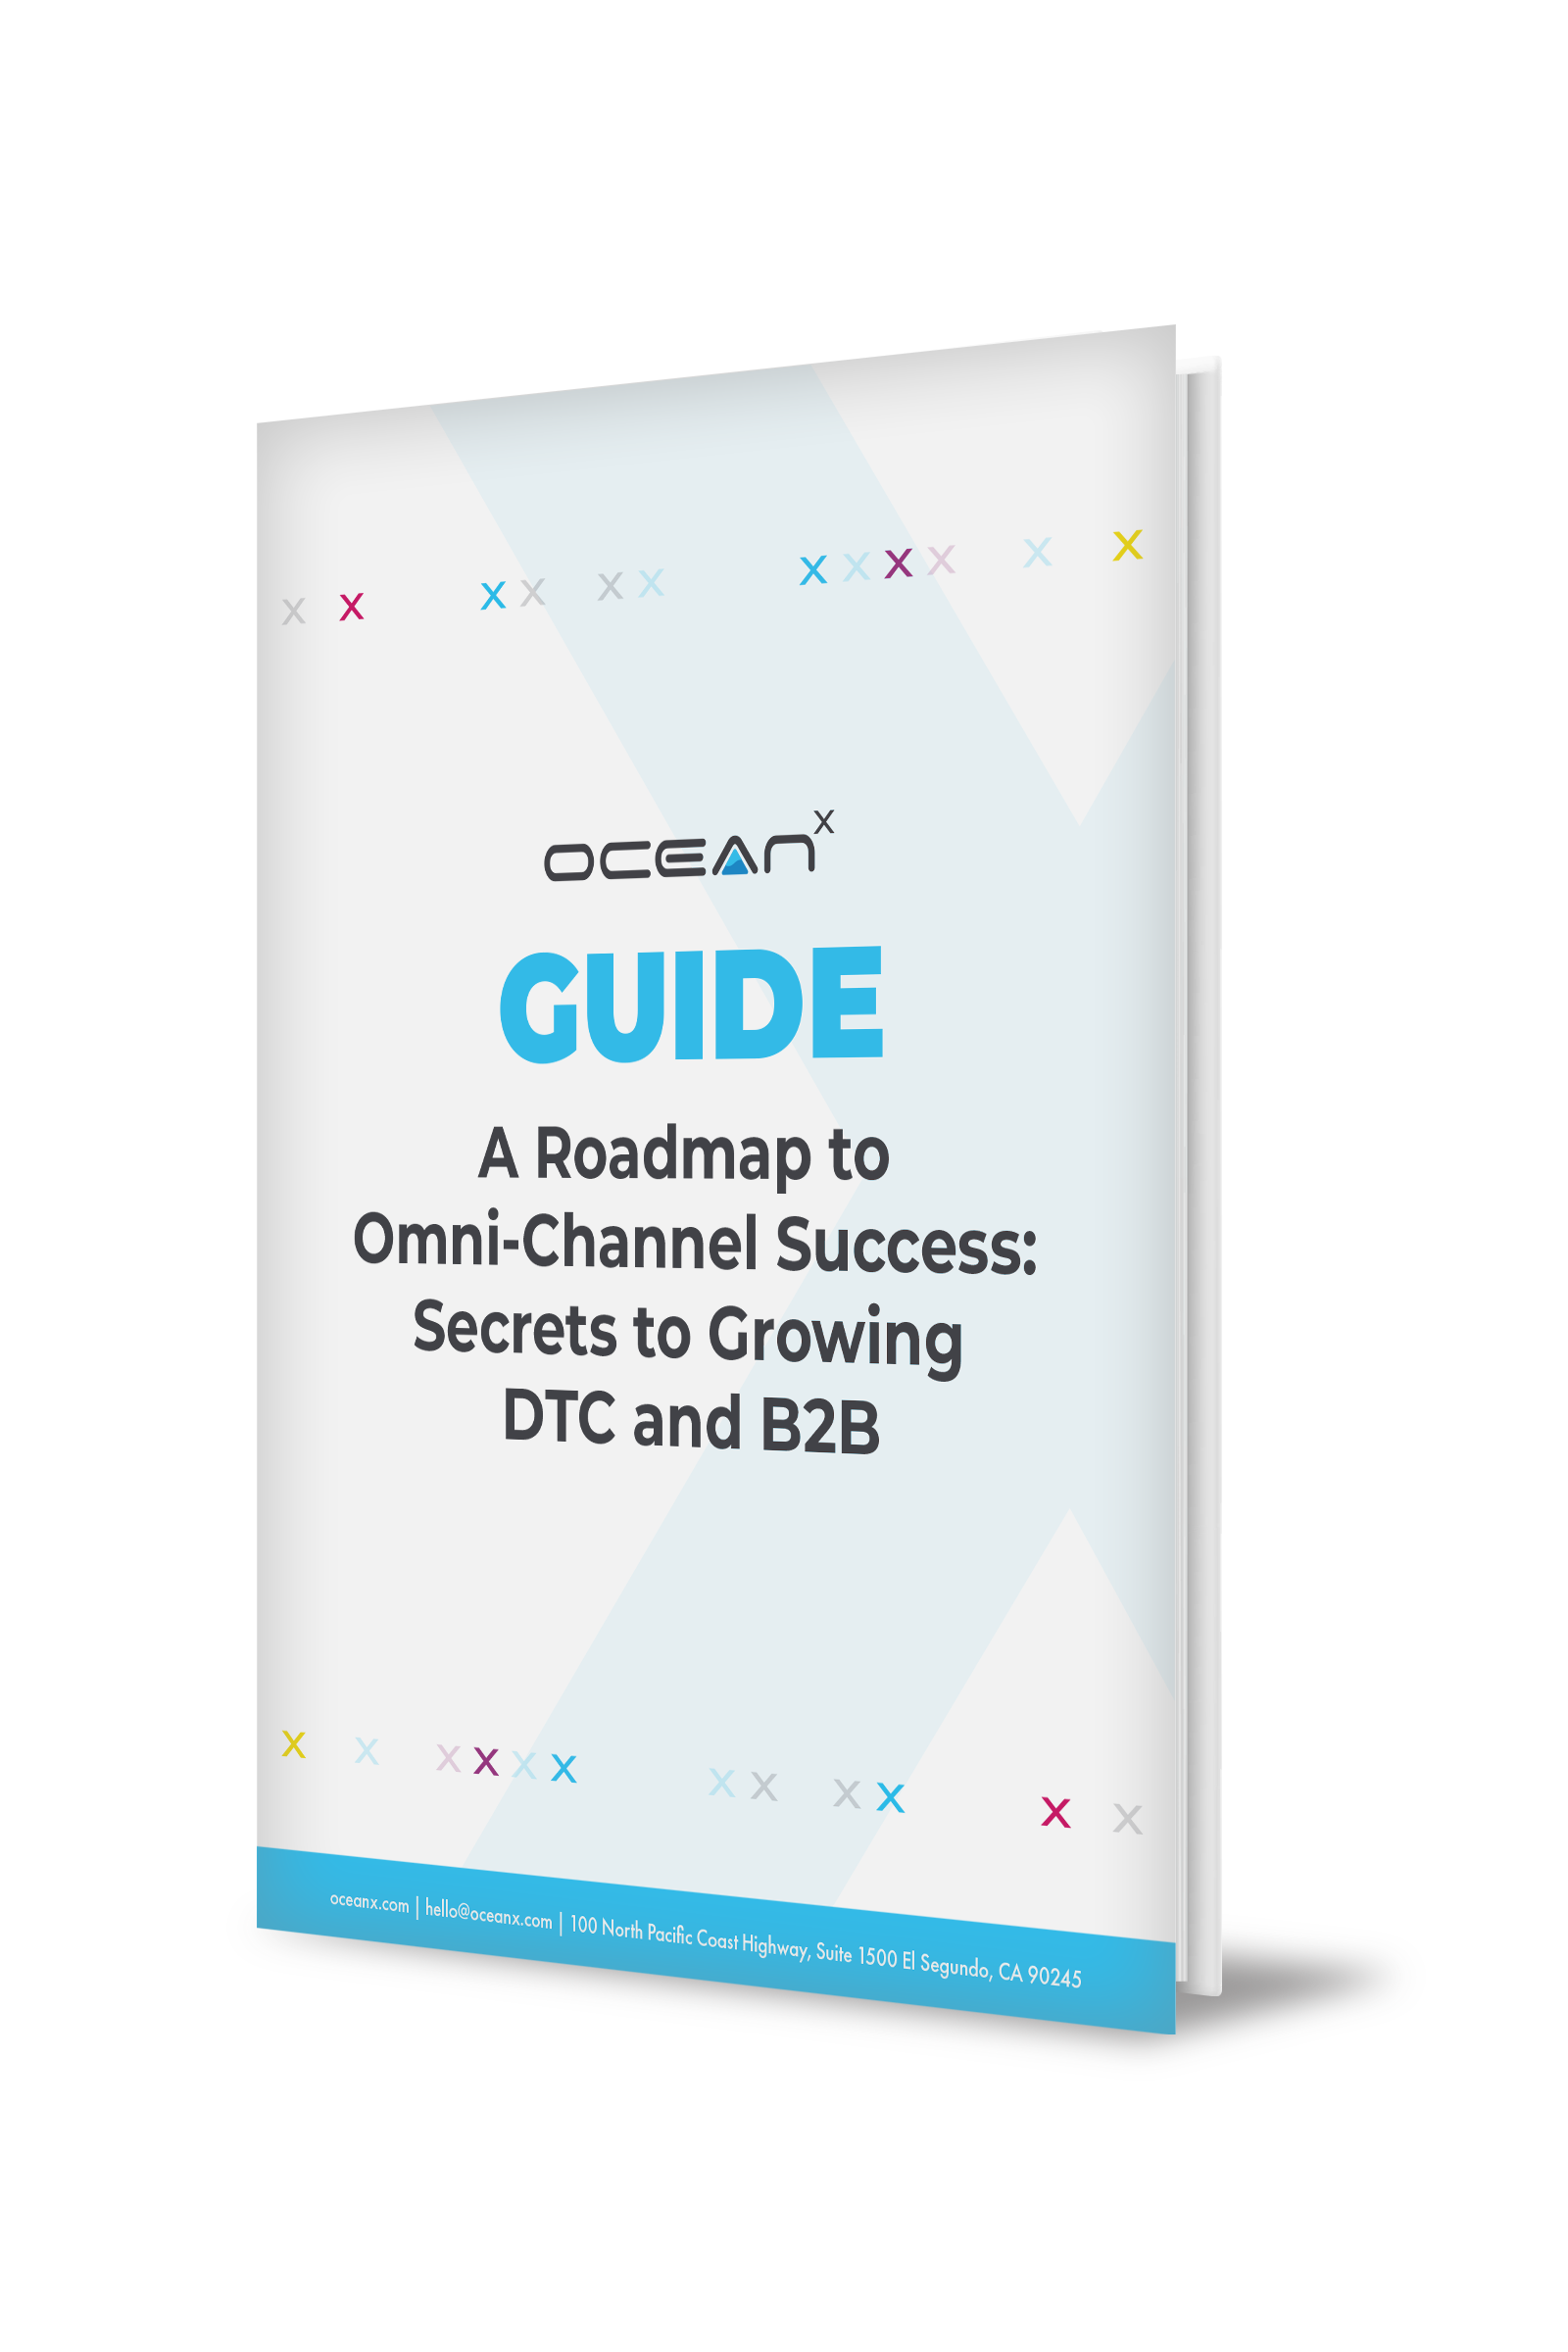 1084485_Cover Image (A Roadmap to Omni Channel Success Secrets to Growing DTC and B2B)_02_060721